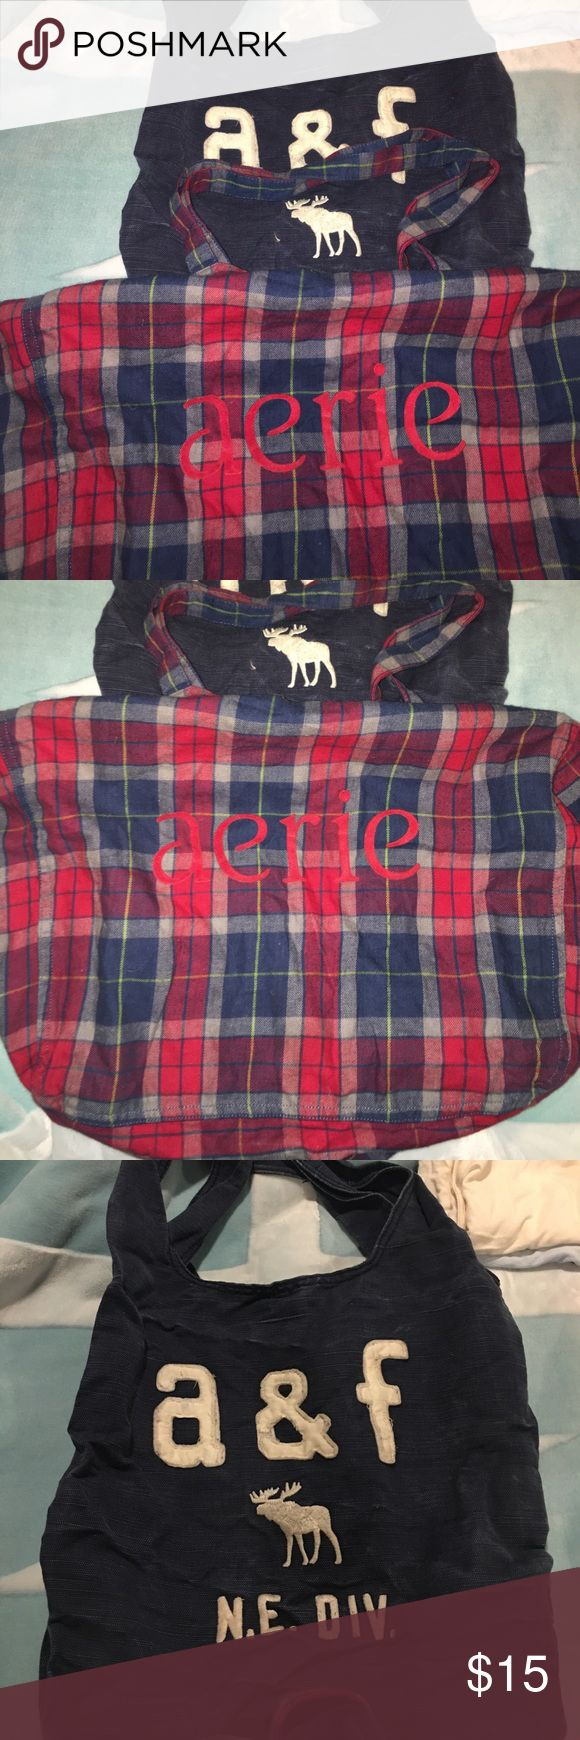 Aerie and a&f bags Great condition. Perfect for a quick over night bag or to carry school books. A&f bag is thick and durable. Aerie bag is thinner but a lot wider in size so it's perfect for clothes Abercrombie & Fitch Bags Travel Bags